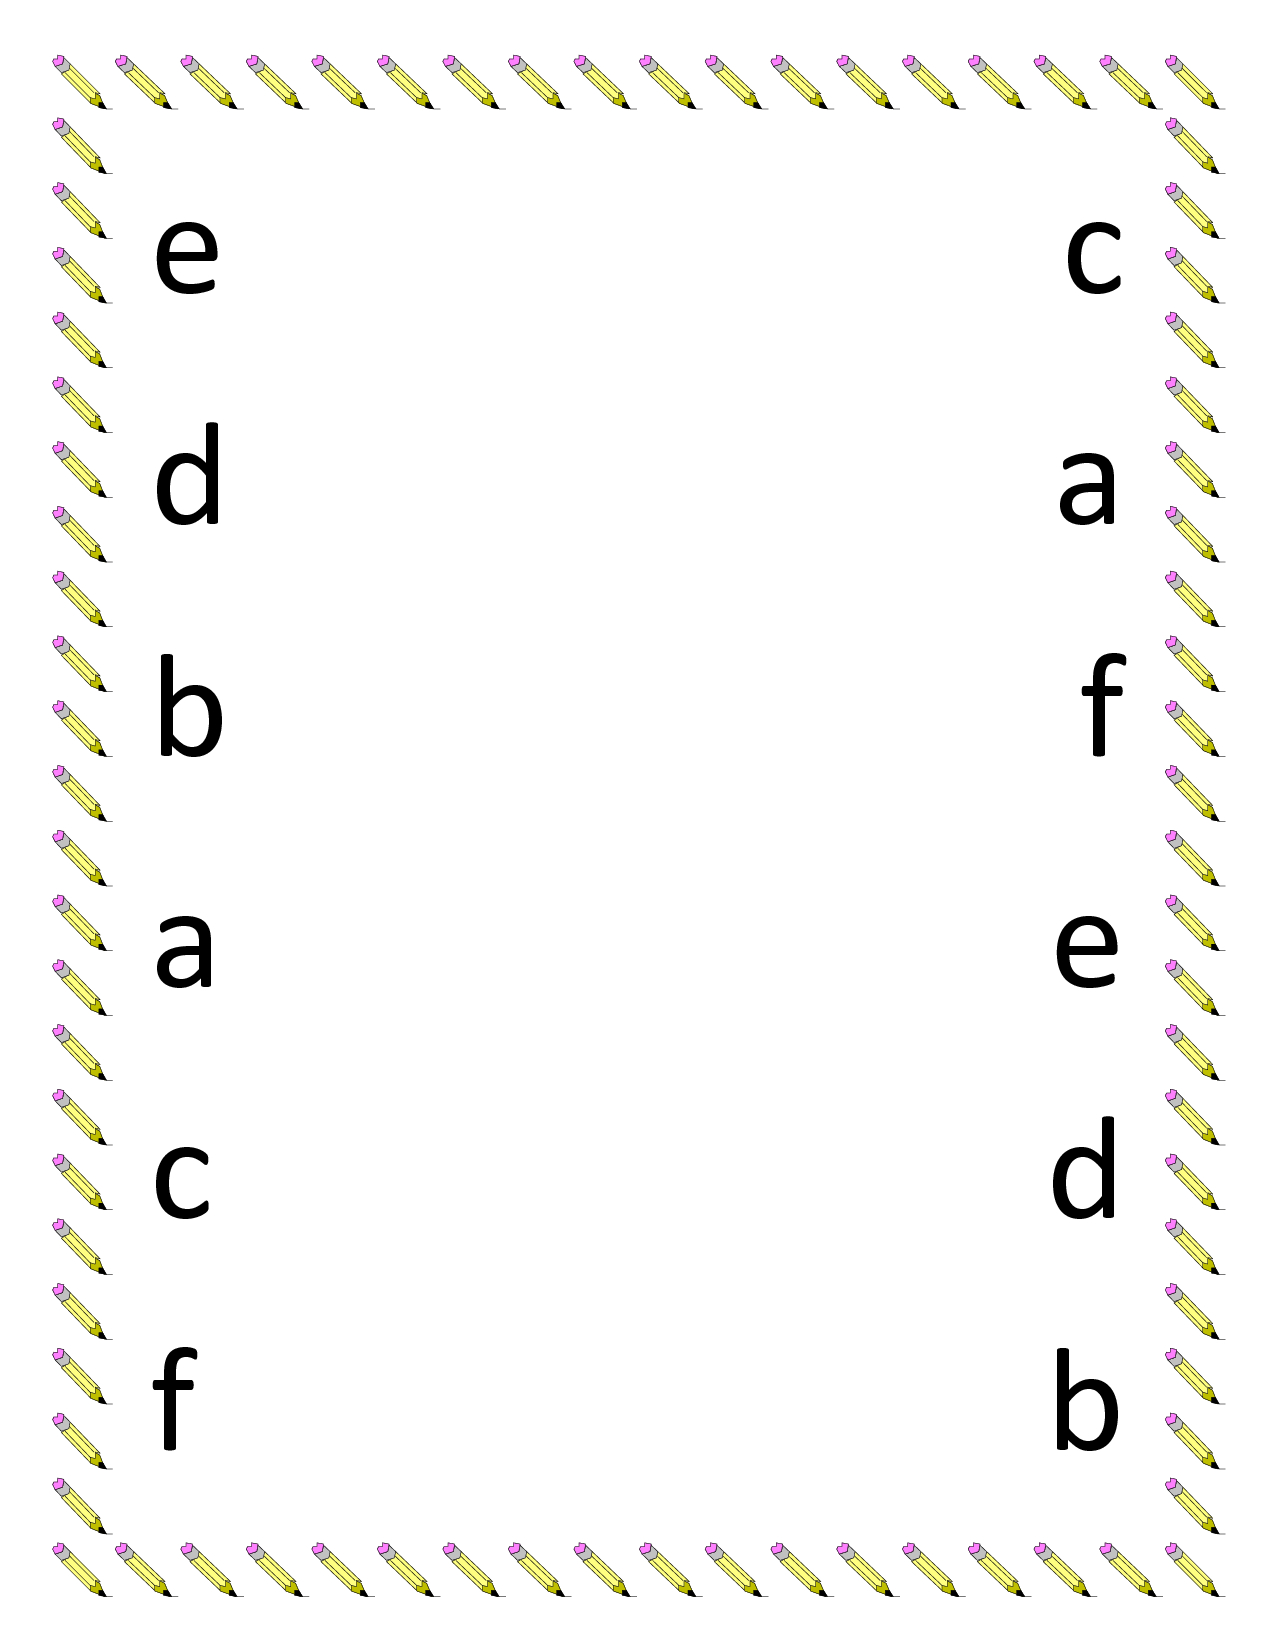 Preschool Science Worksheets Printables | Preschool Matching throughout Alphabet Matching Worksheets For Pre-K